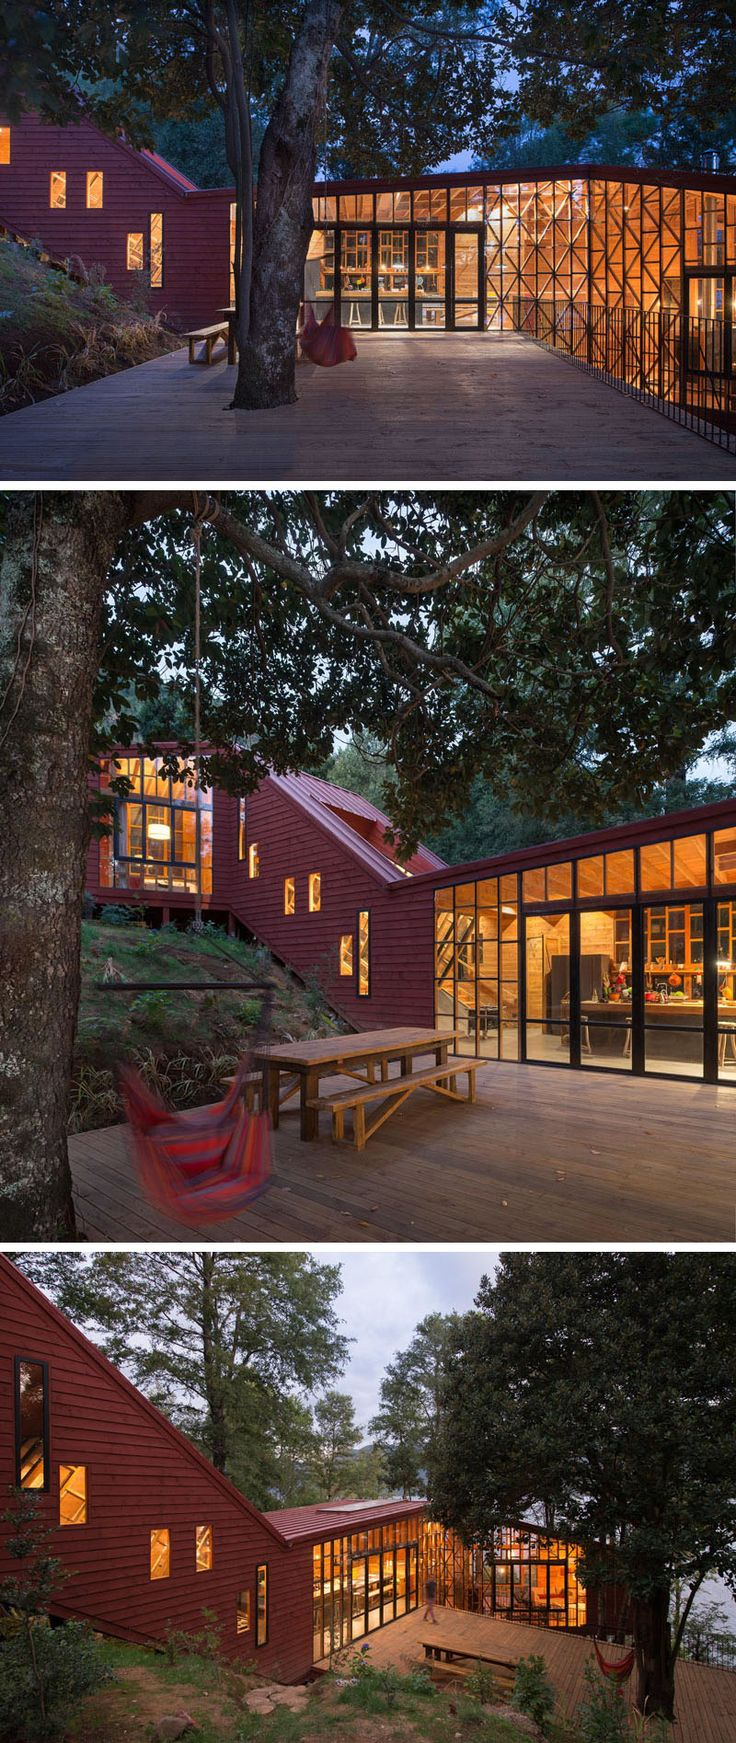 This home has a large deck just of the kitchen, that's been built around a tree and provides a space for outdoor dining and entertaining.